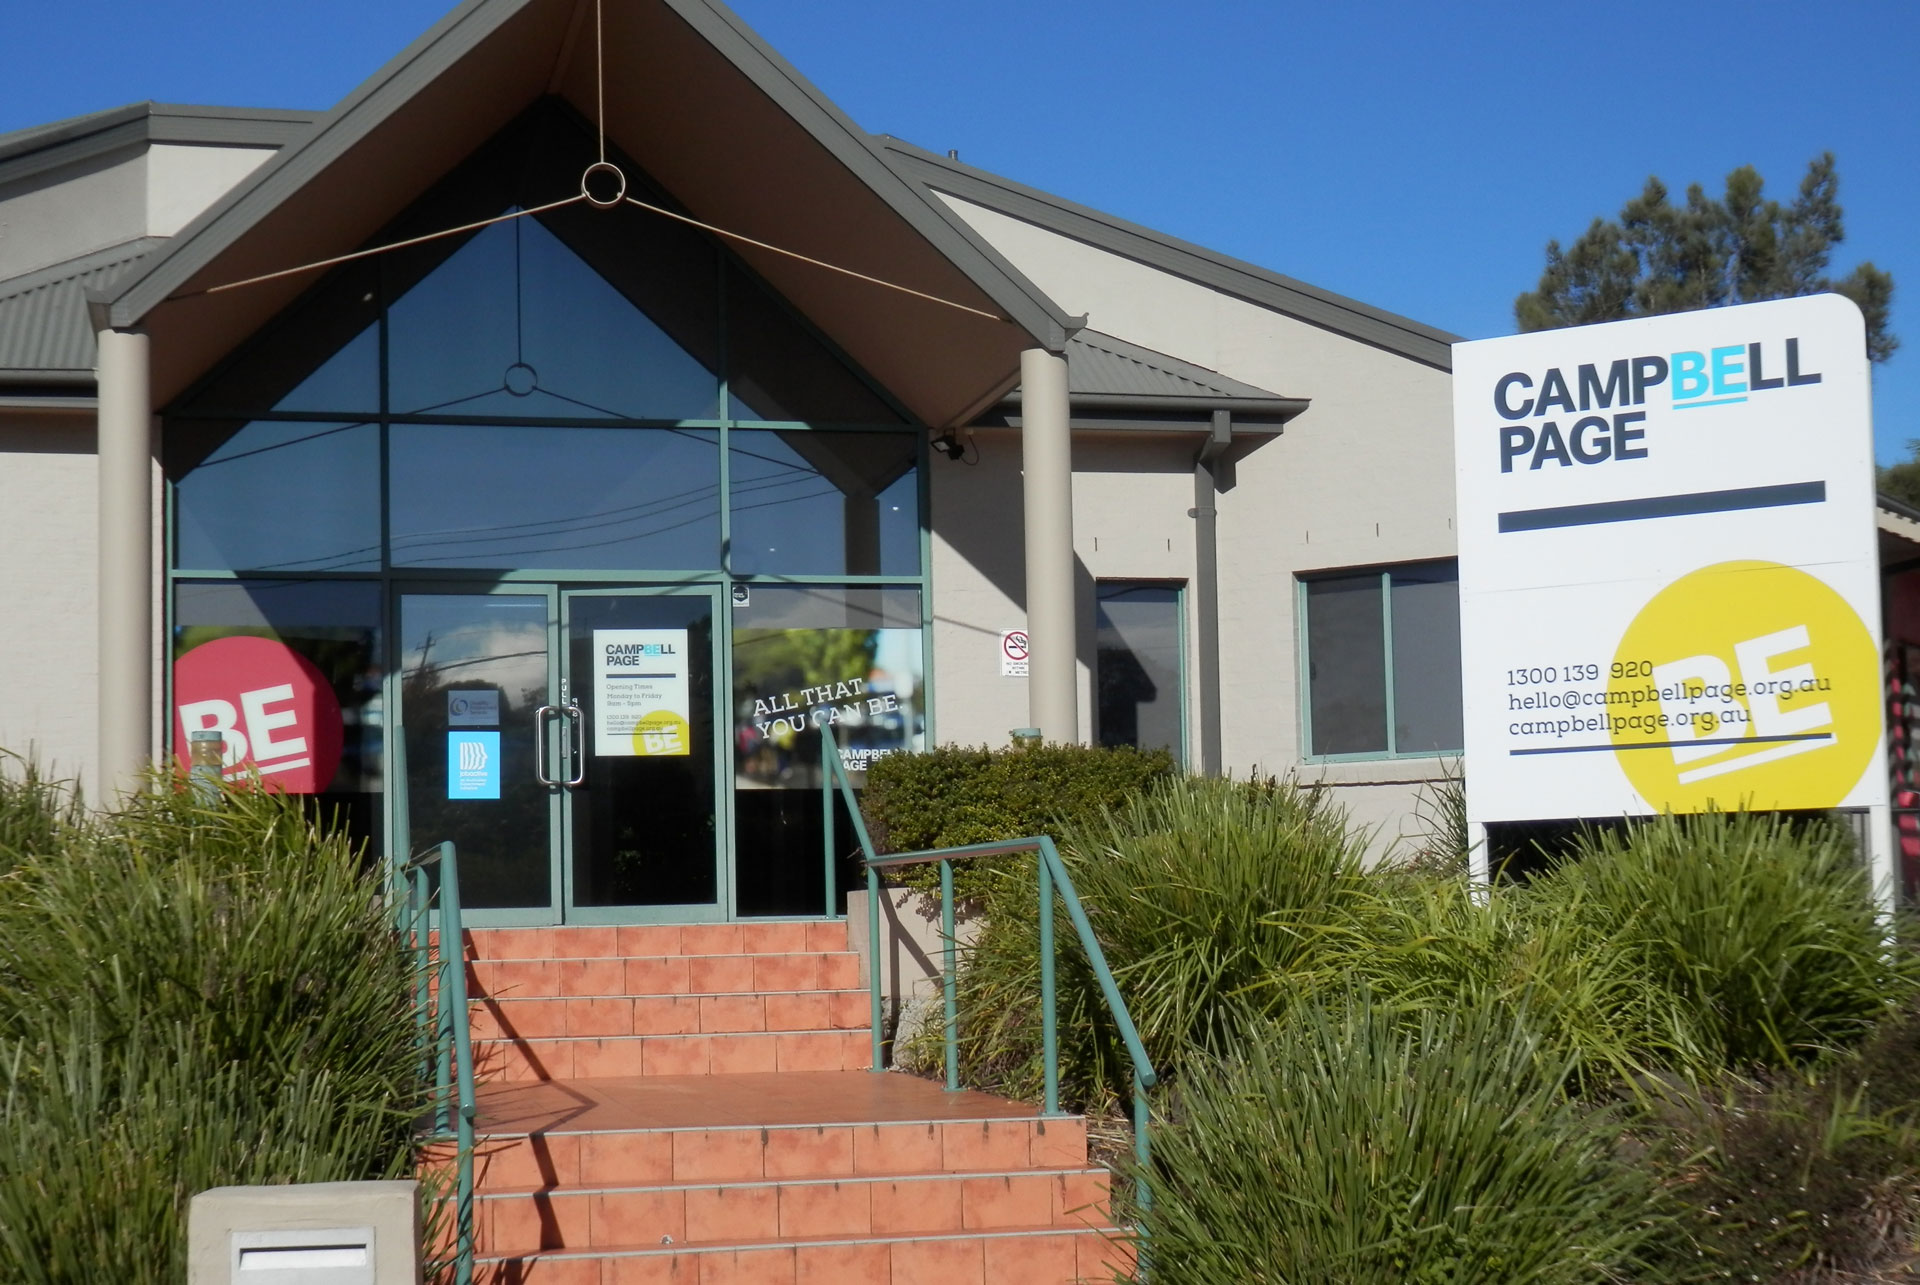 Campbell Page Batemans Bay external site signage